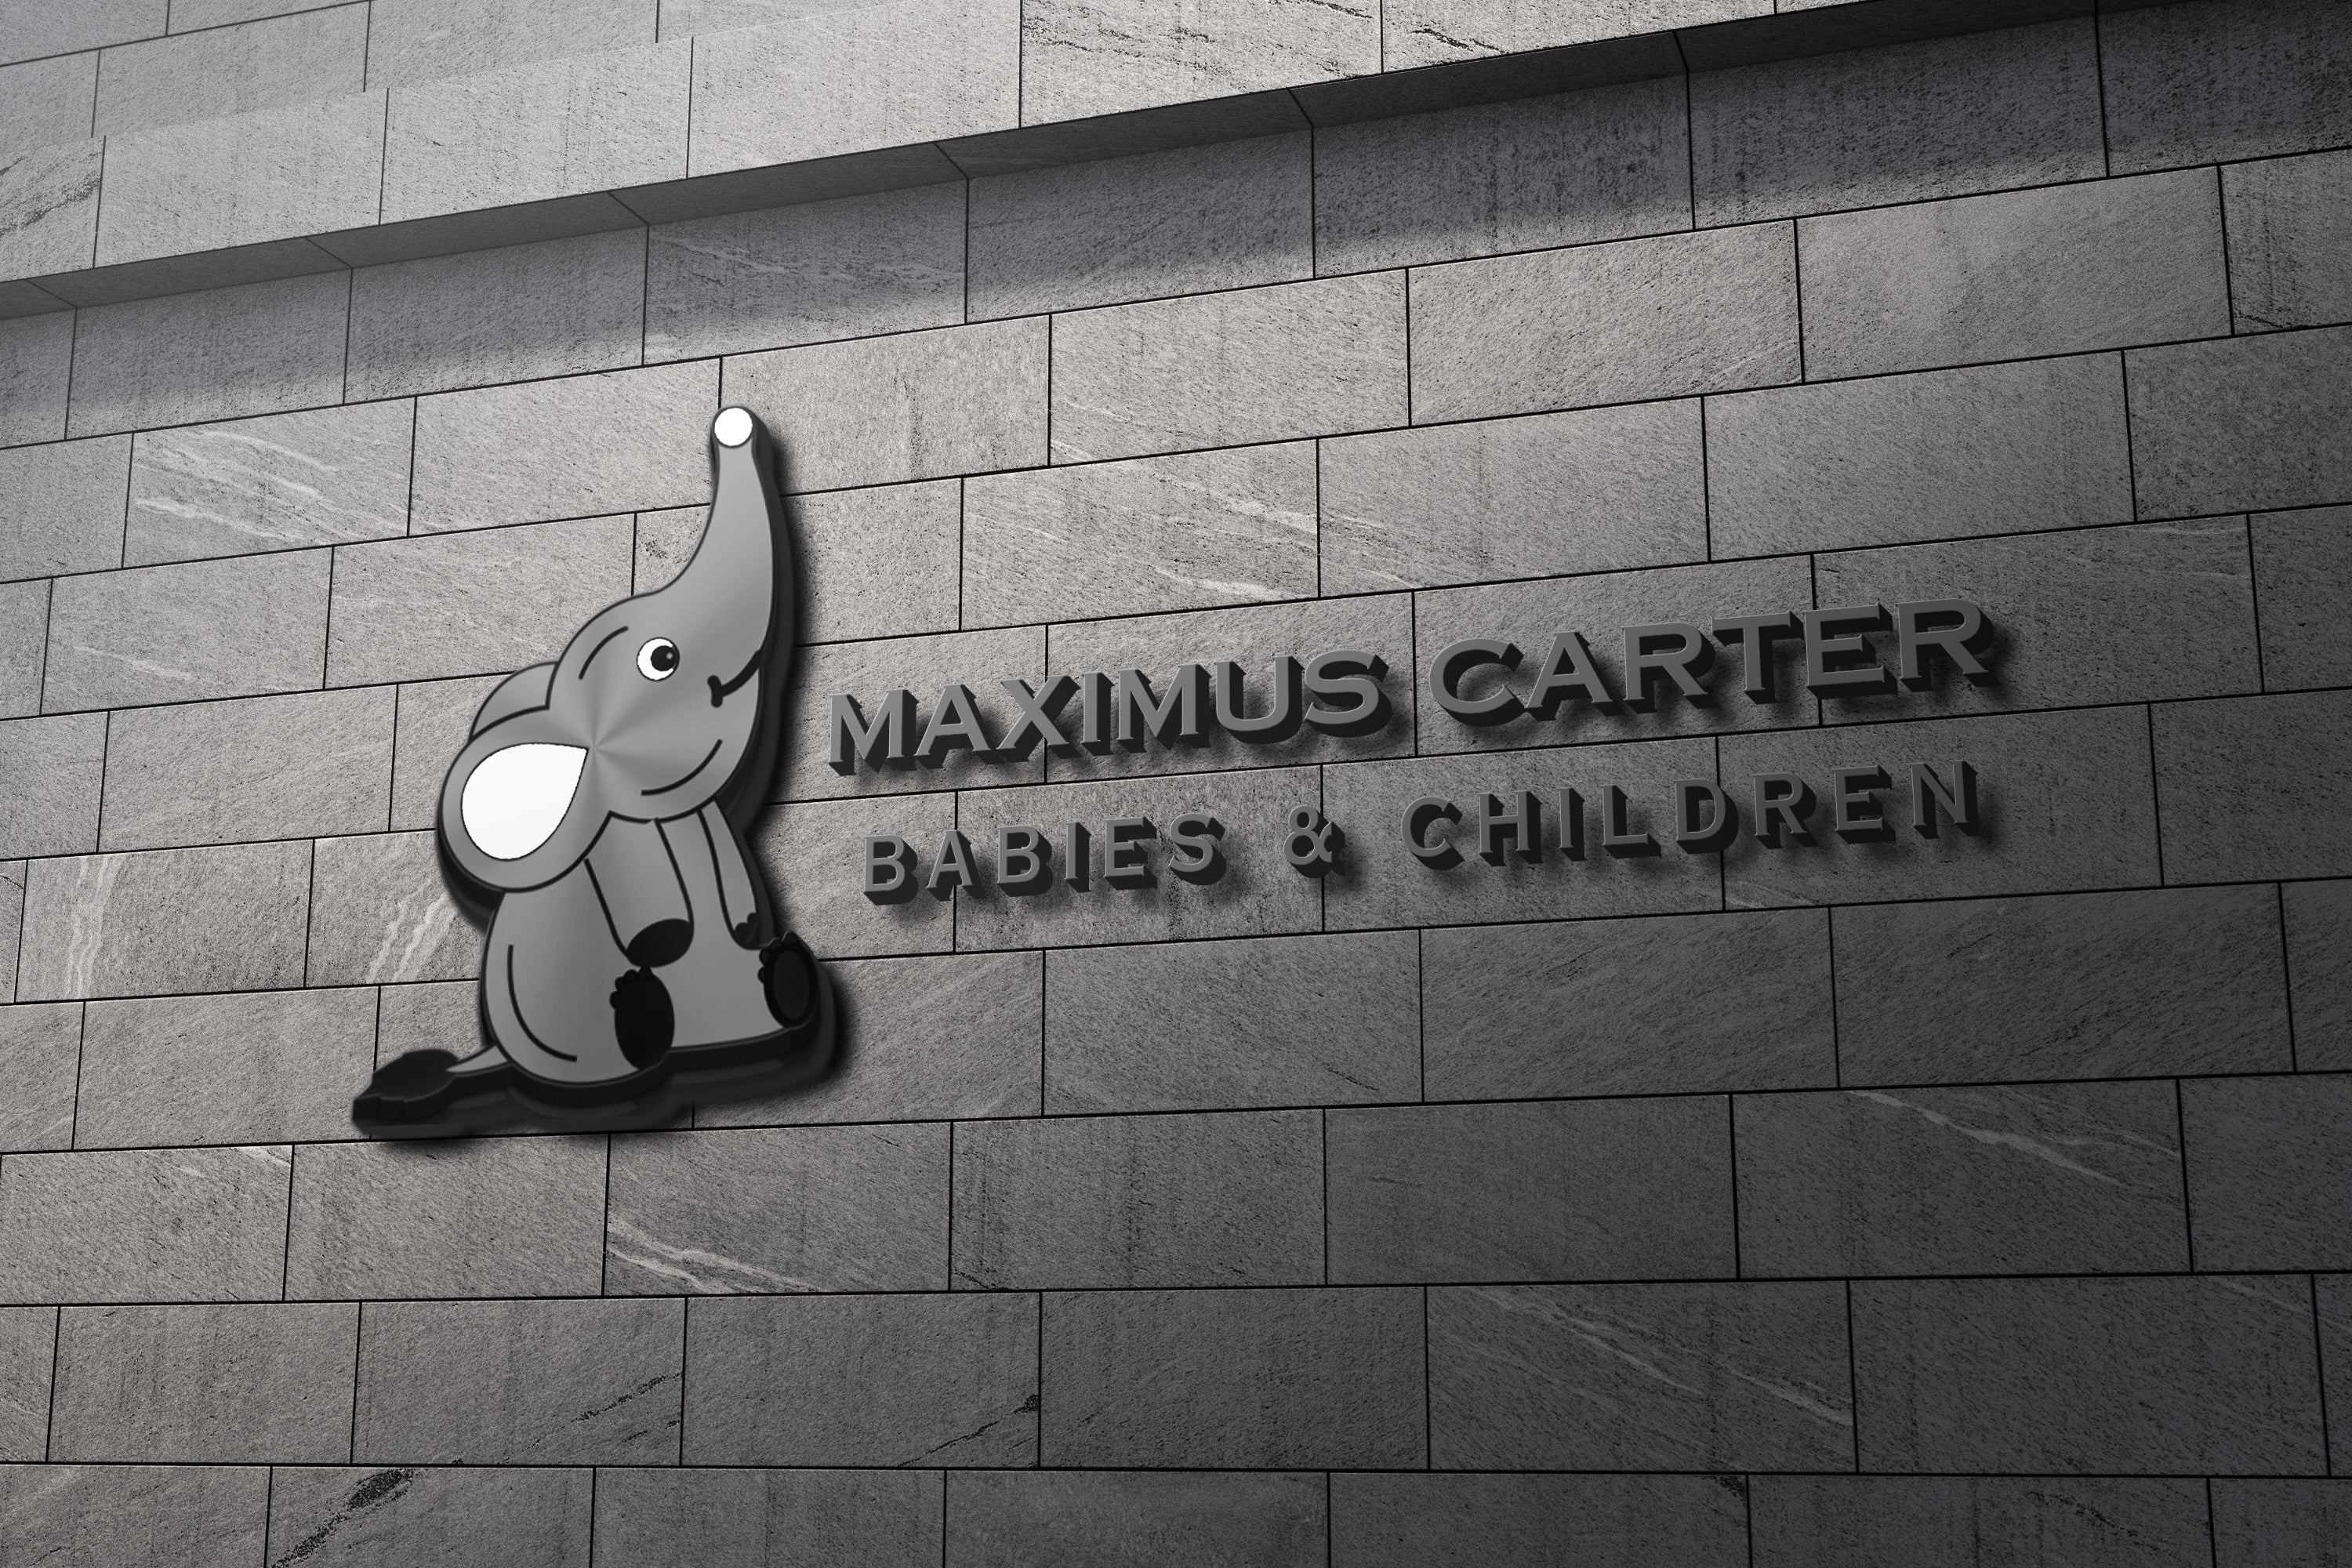 Welcome to Maximus Carter News